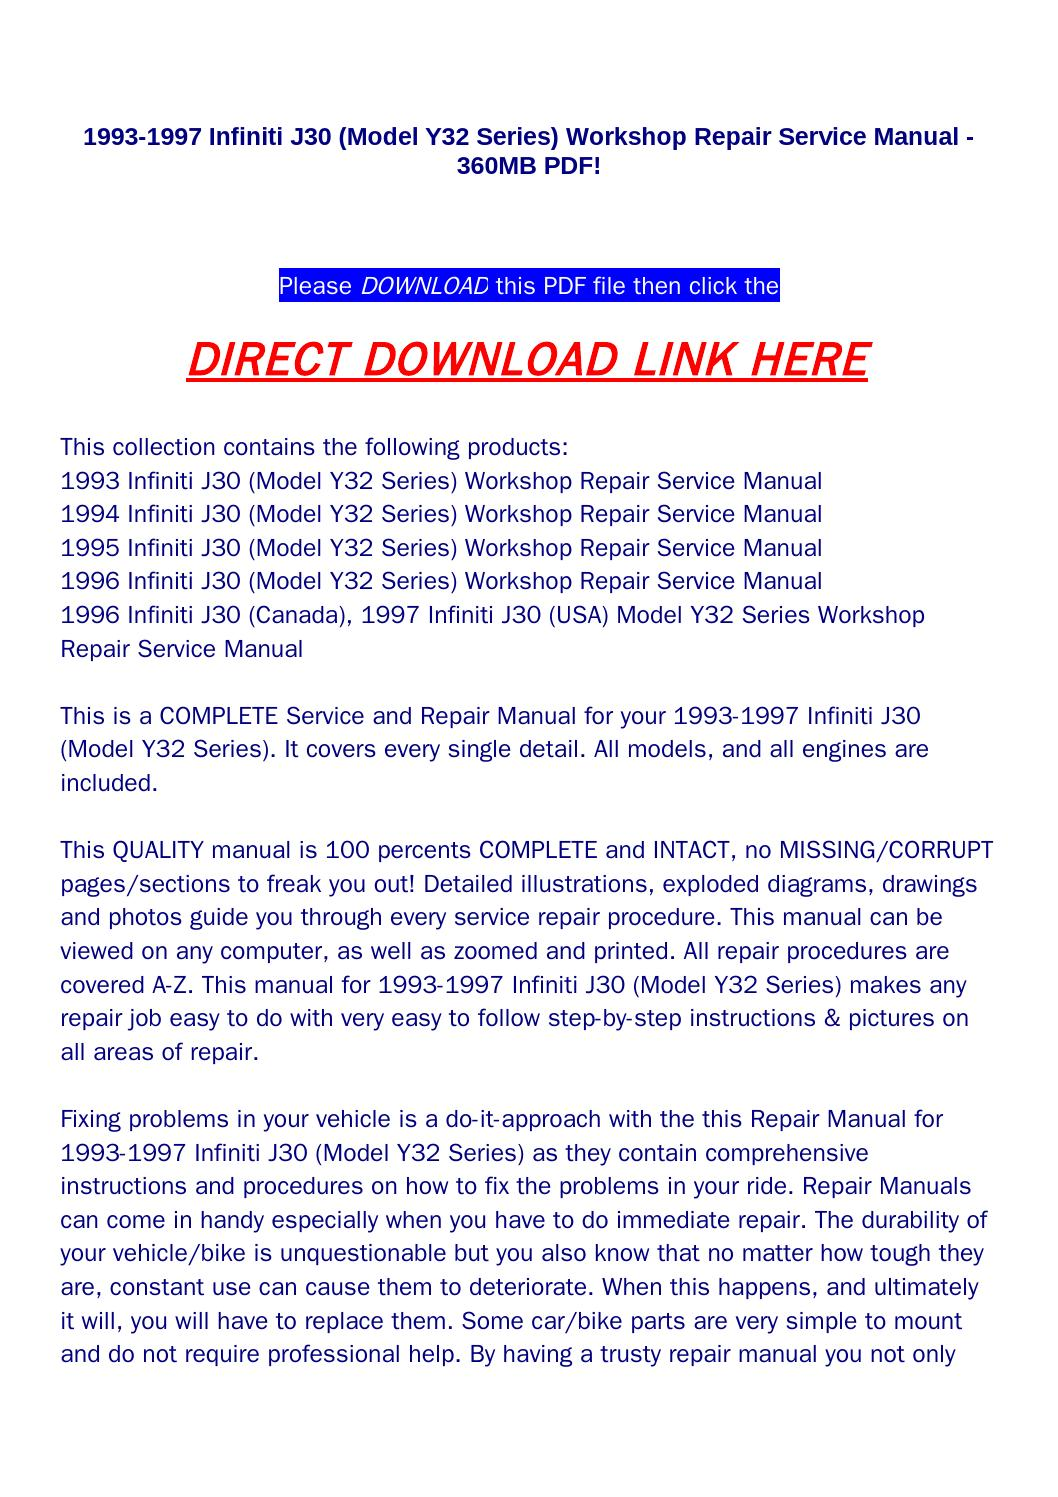 1993 1997 infiniti j30 (model y32 series) workshop repair service manual  360mb pdf! by wsds@qualityservicemanual.com - issuu